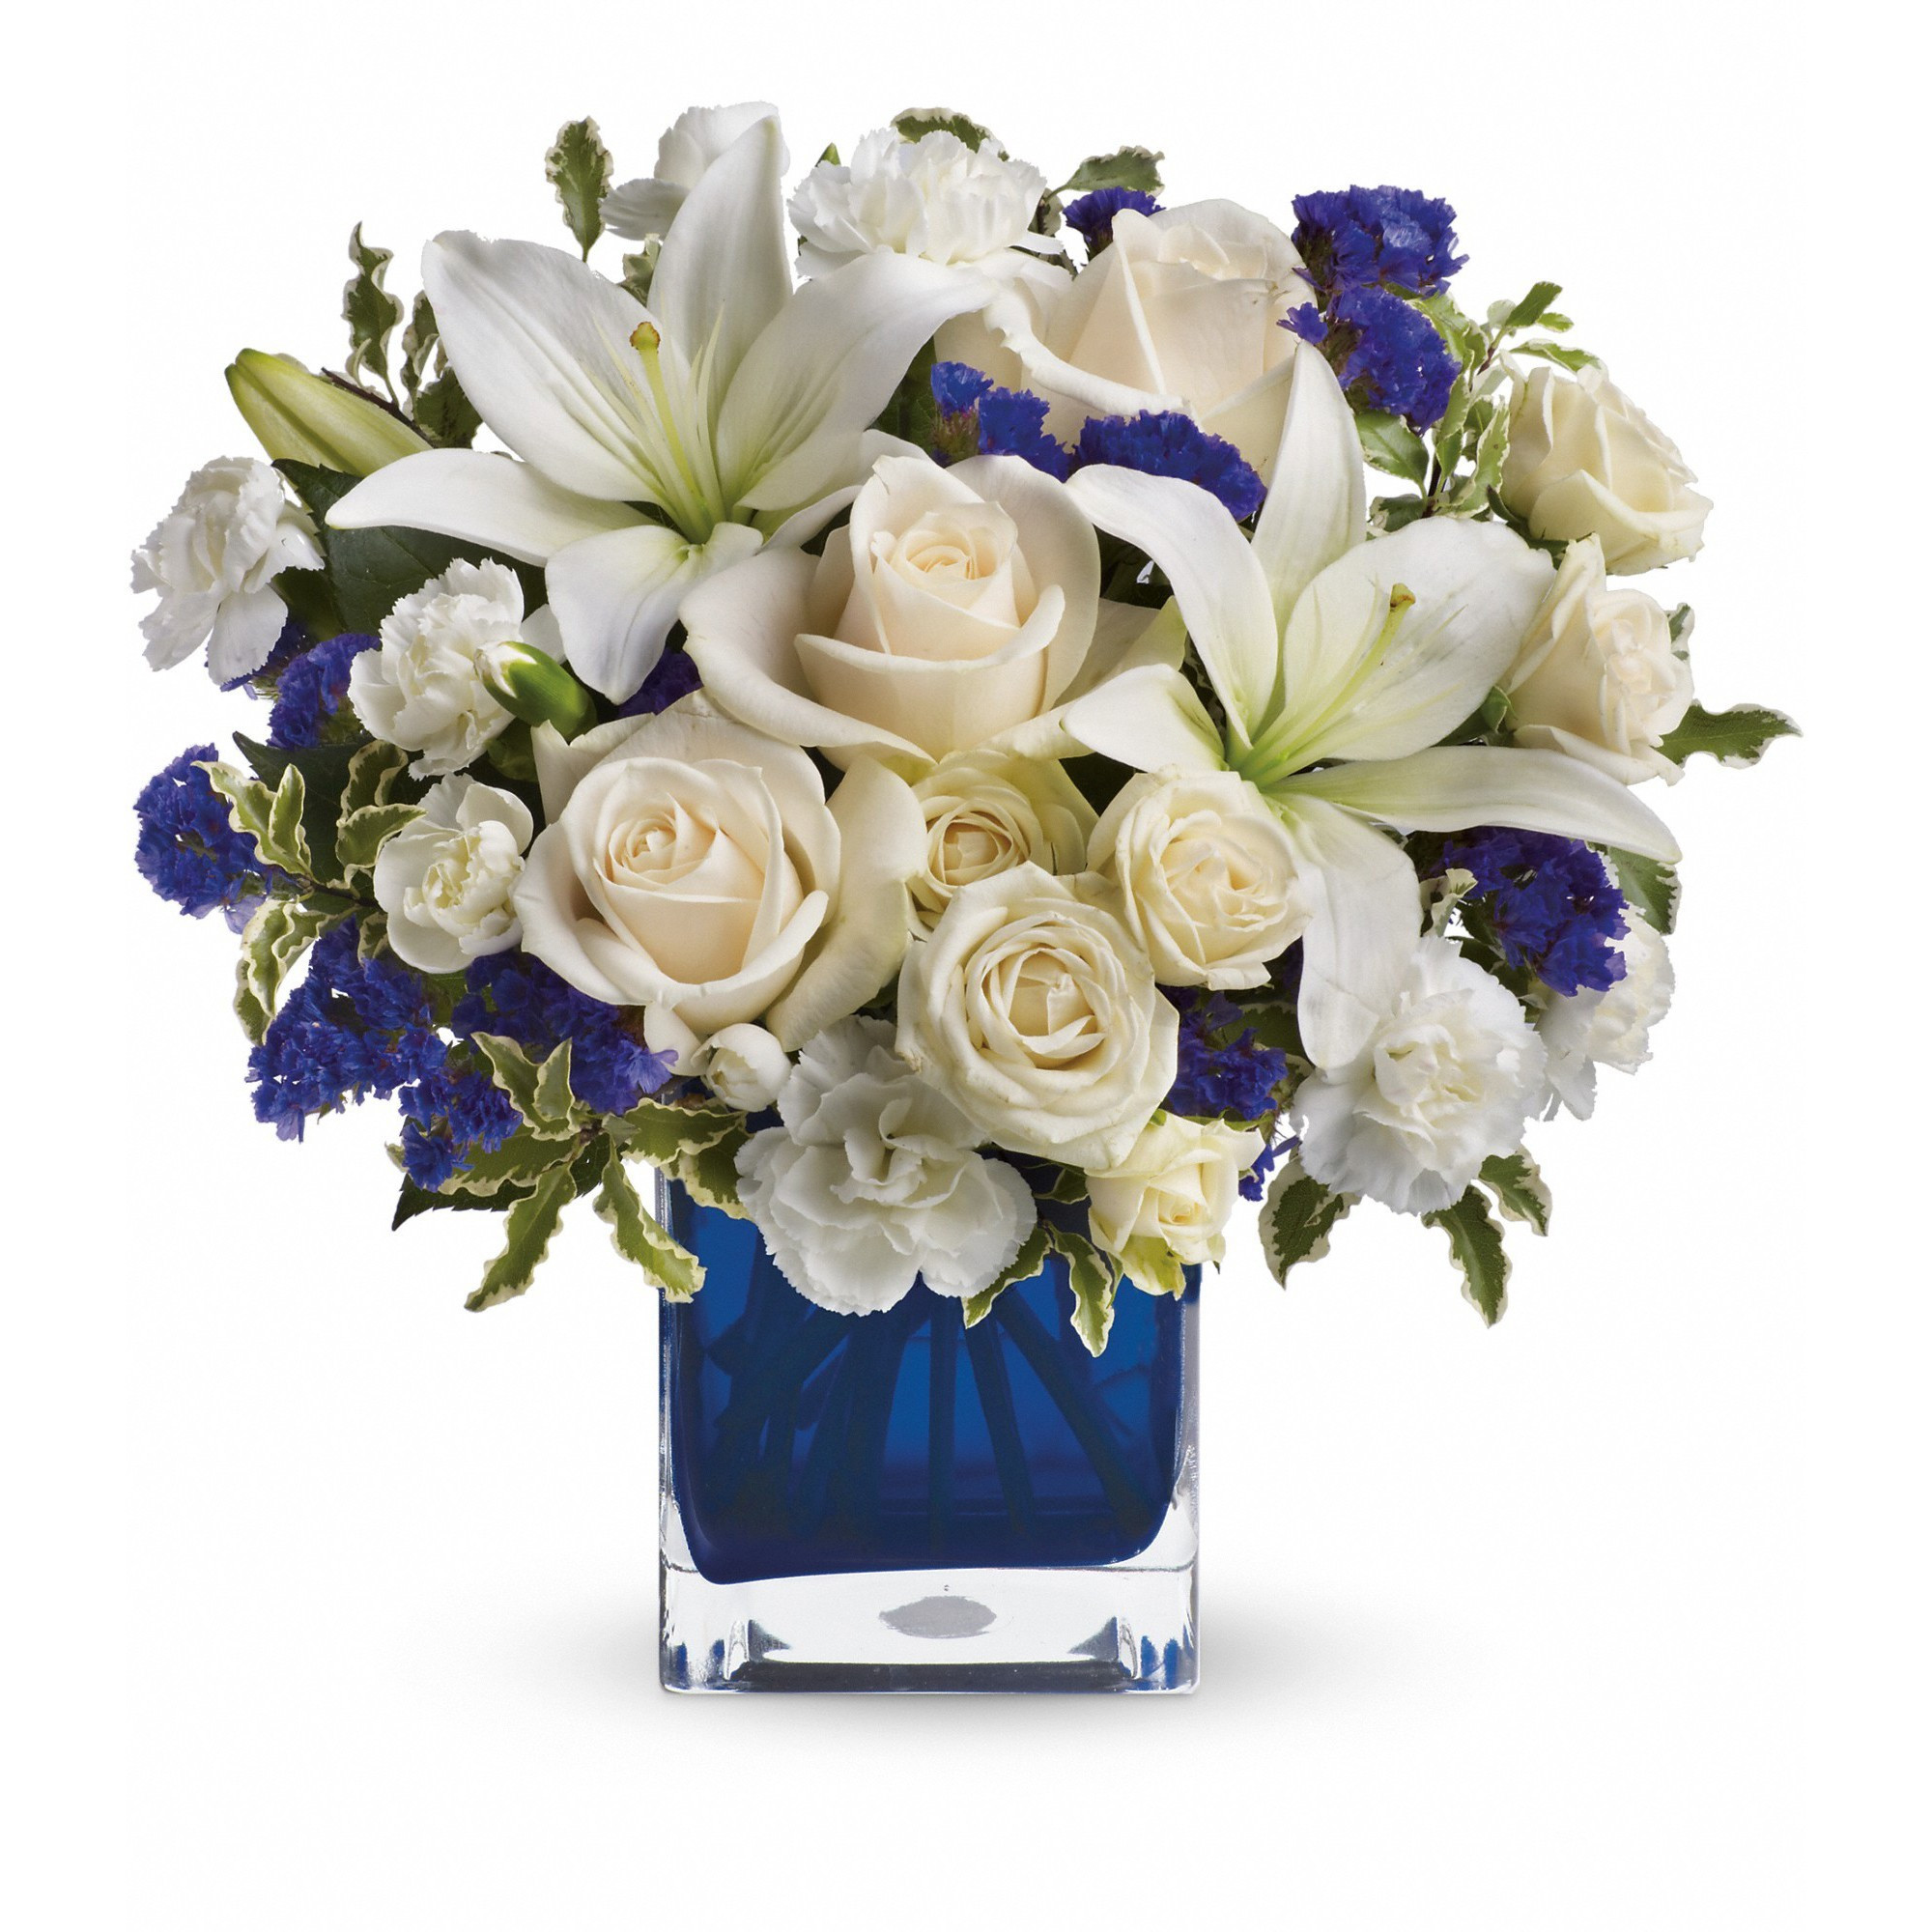 sympathy cross vase of telefloras sapphire skies bouquet tev25 3a in frederick md amour pertaining to telefloras sapphire skies bouquet tev25 3a